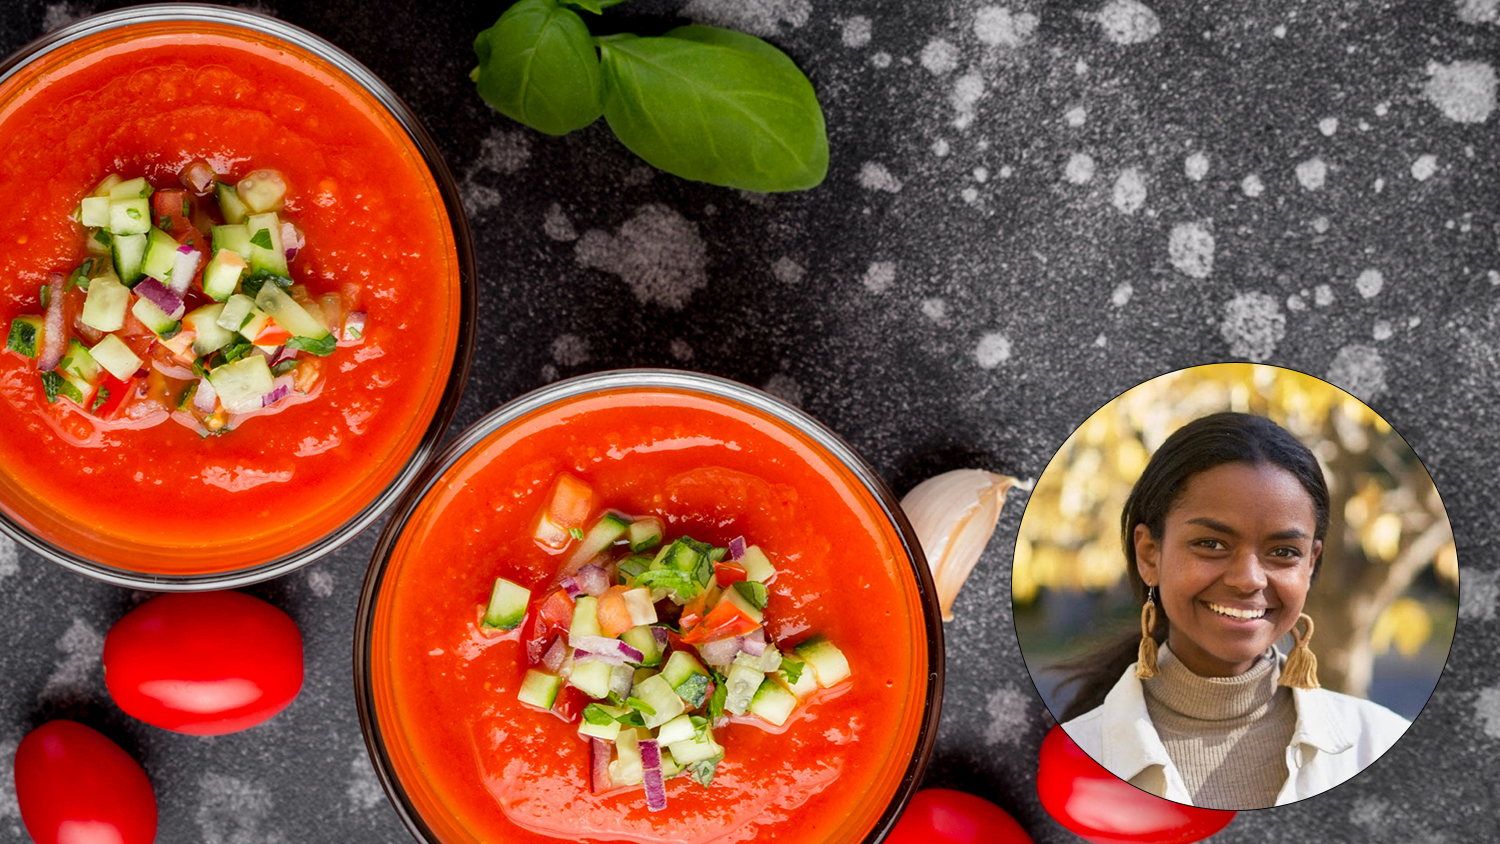 Image for Virtual Class – Budget Cooking: Summery Gazpacho